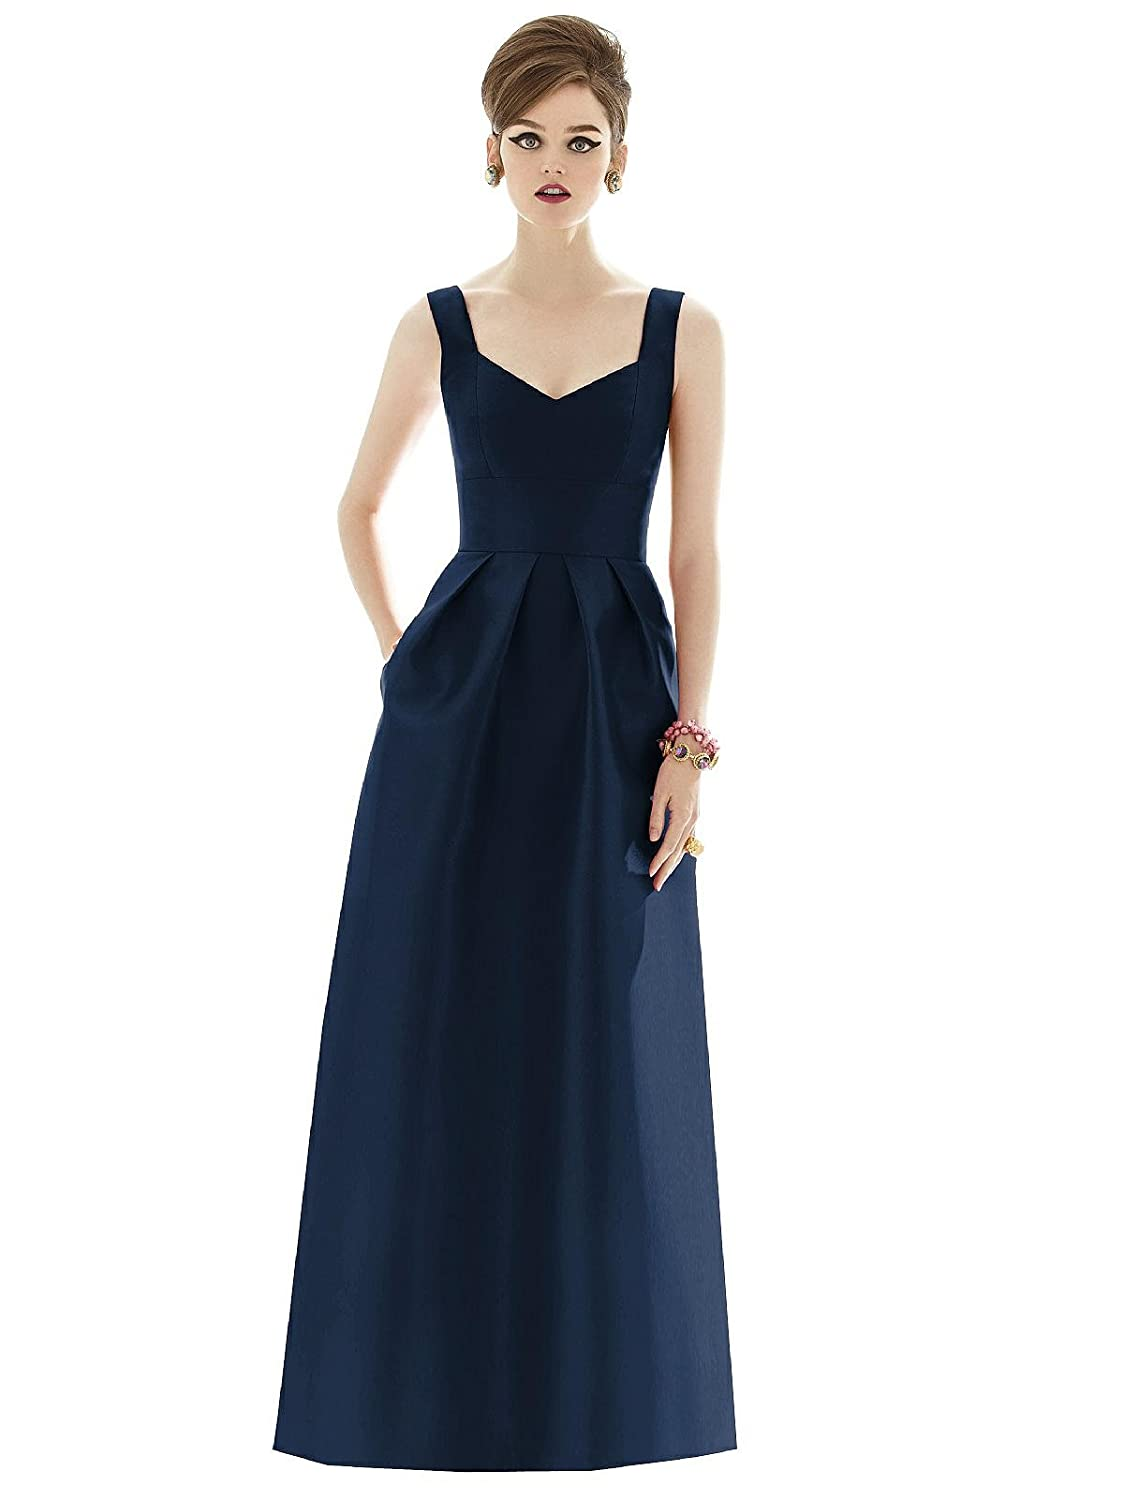 Alfred Sung Dessy Womens Full Length Sleeveless Sateen Twill Dress with Sweetheart Neckline